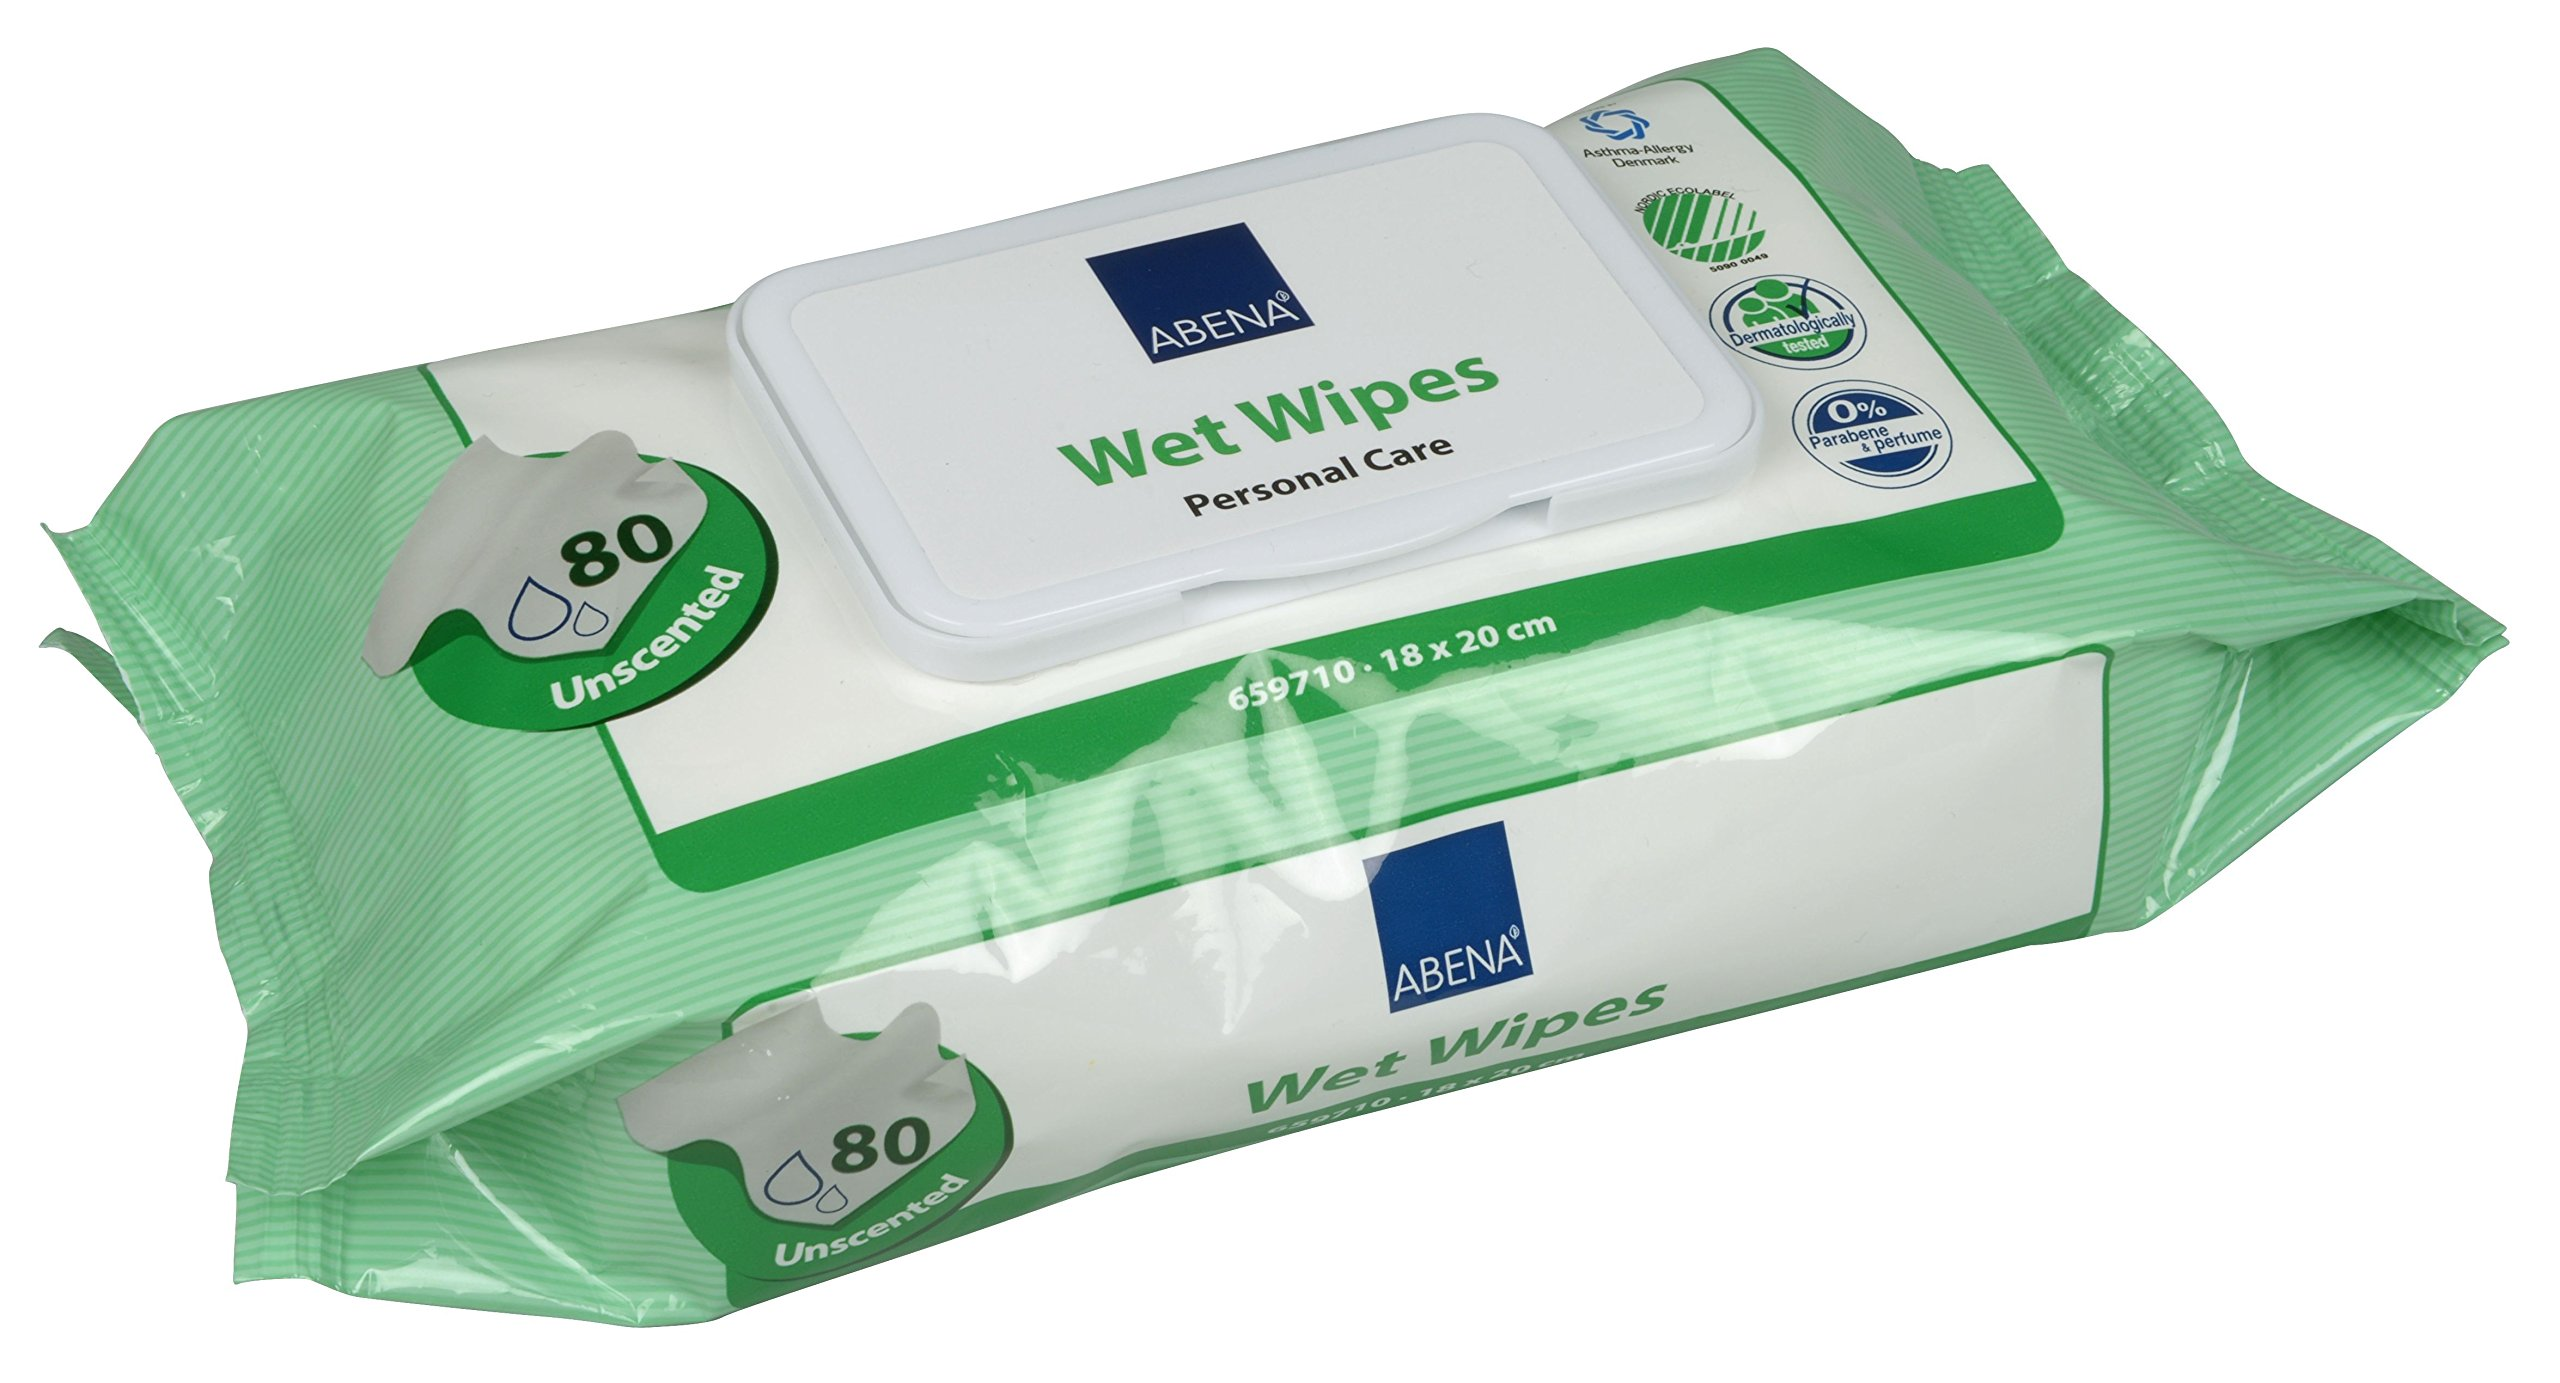 Abena Personal Care Wet Wipes with Lid, Unscented, 18 x 20 cm (80 sheets/pack), 1280 count